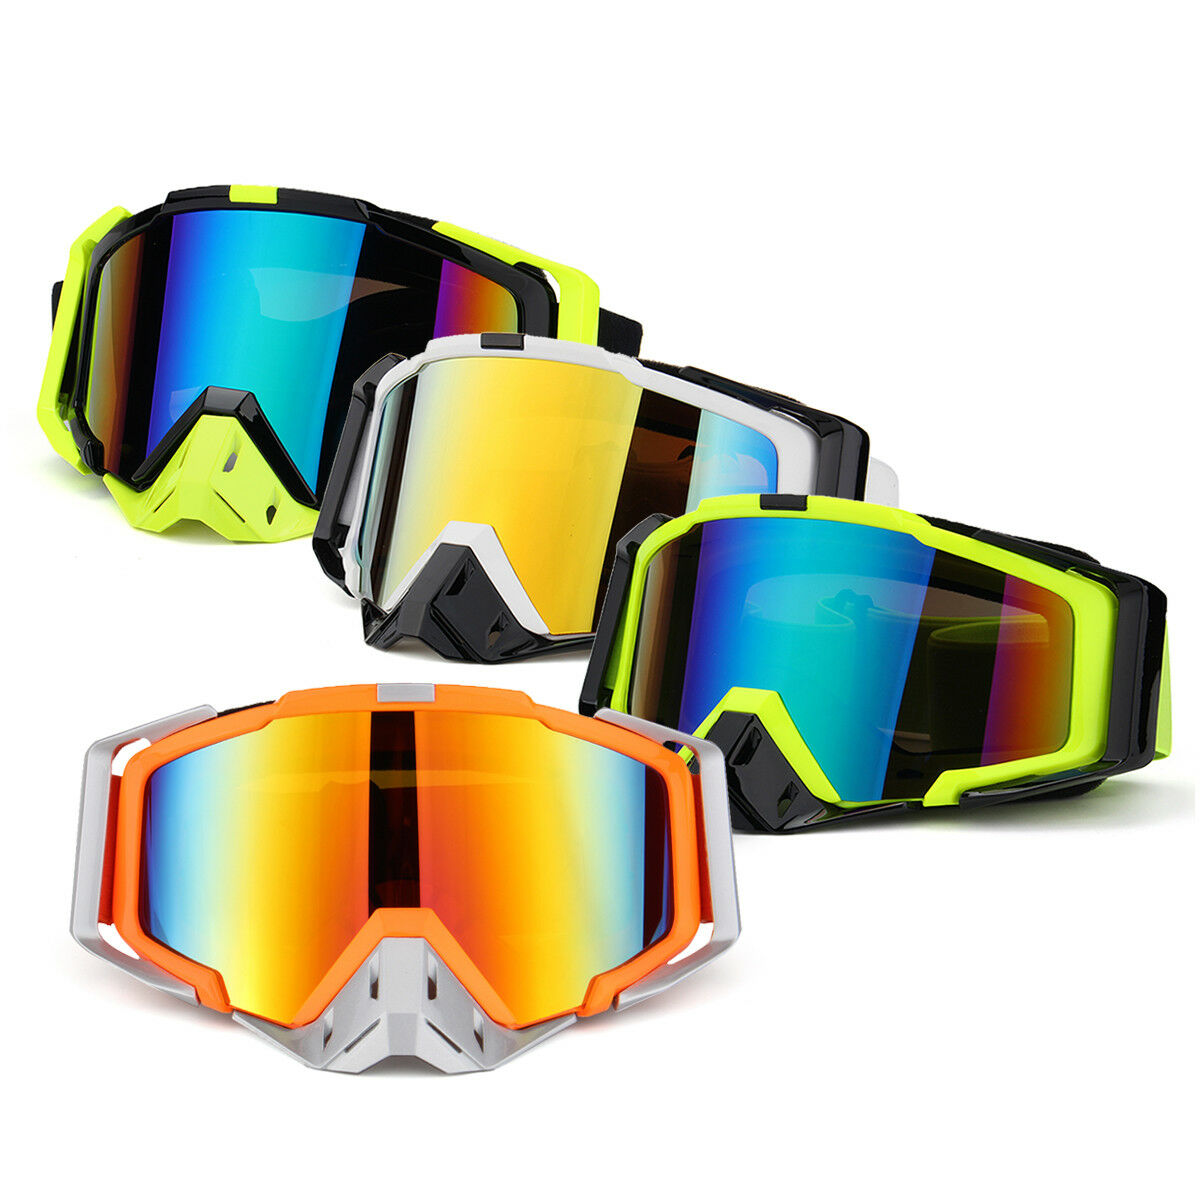 TYF102 Outdoor Skiing Skating  Goggles Snowmobile Glasses Windproof Anti-Fog UV  find your favorite here